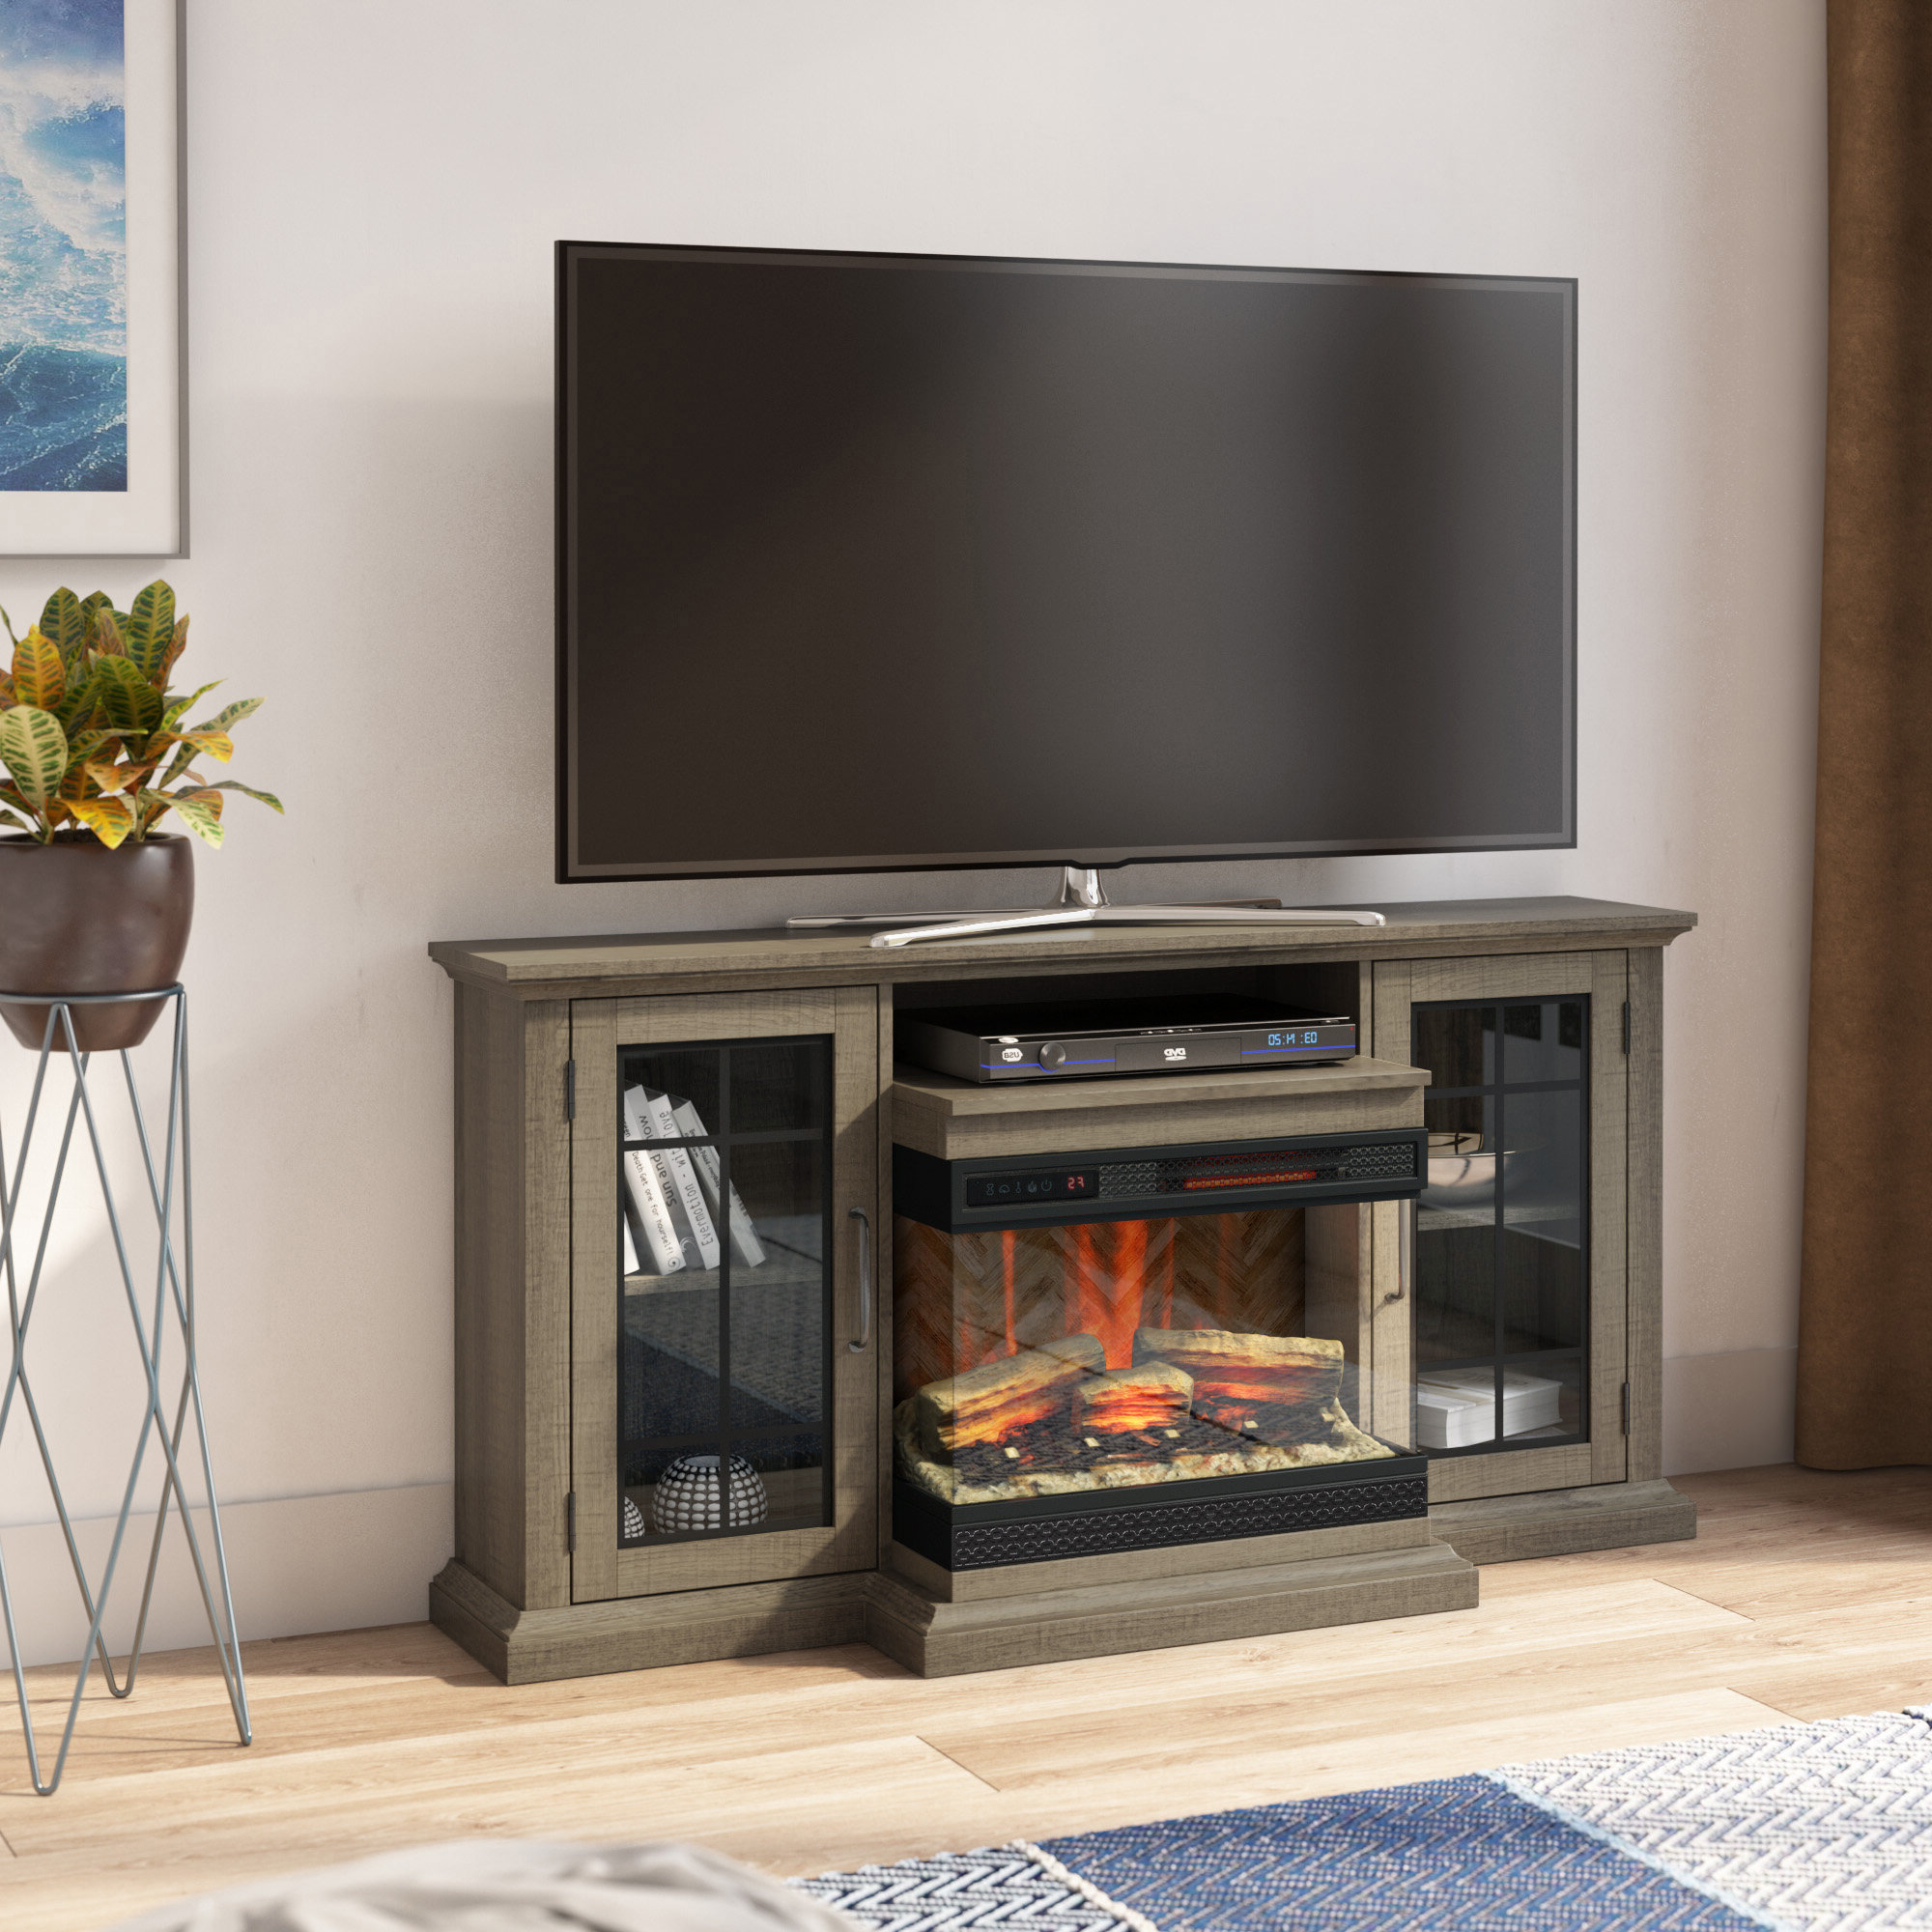 """Latest Electric Fireplace Tv Stand 65 Inch — Shermanscreek Throughout Lorraine Tv Stands For Tvs Up To 60"""" With Fireplace Included (View 15 of 25)"""